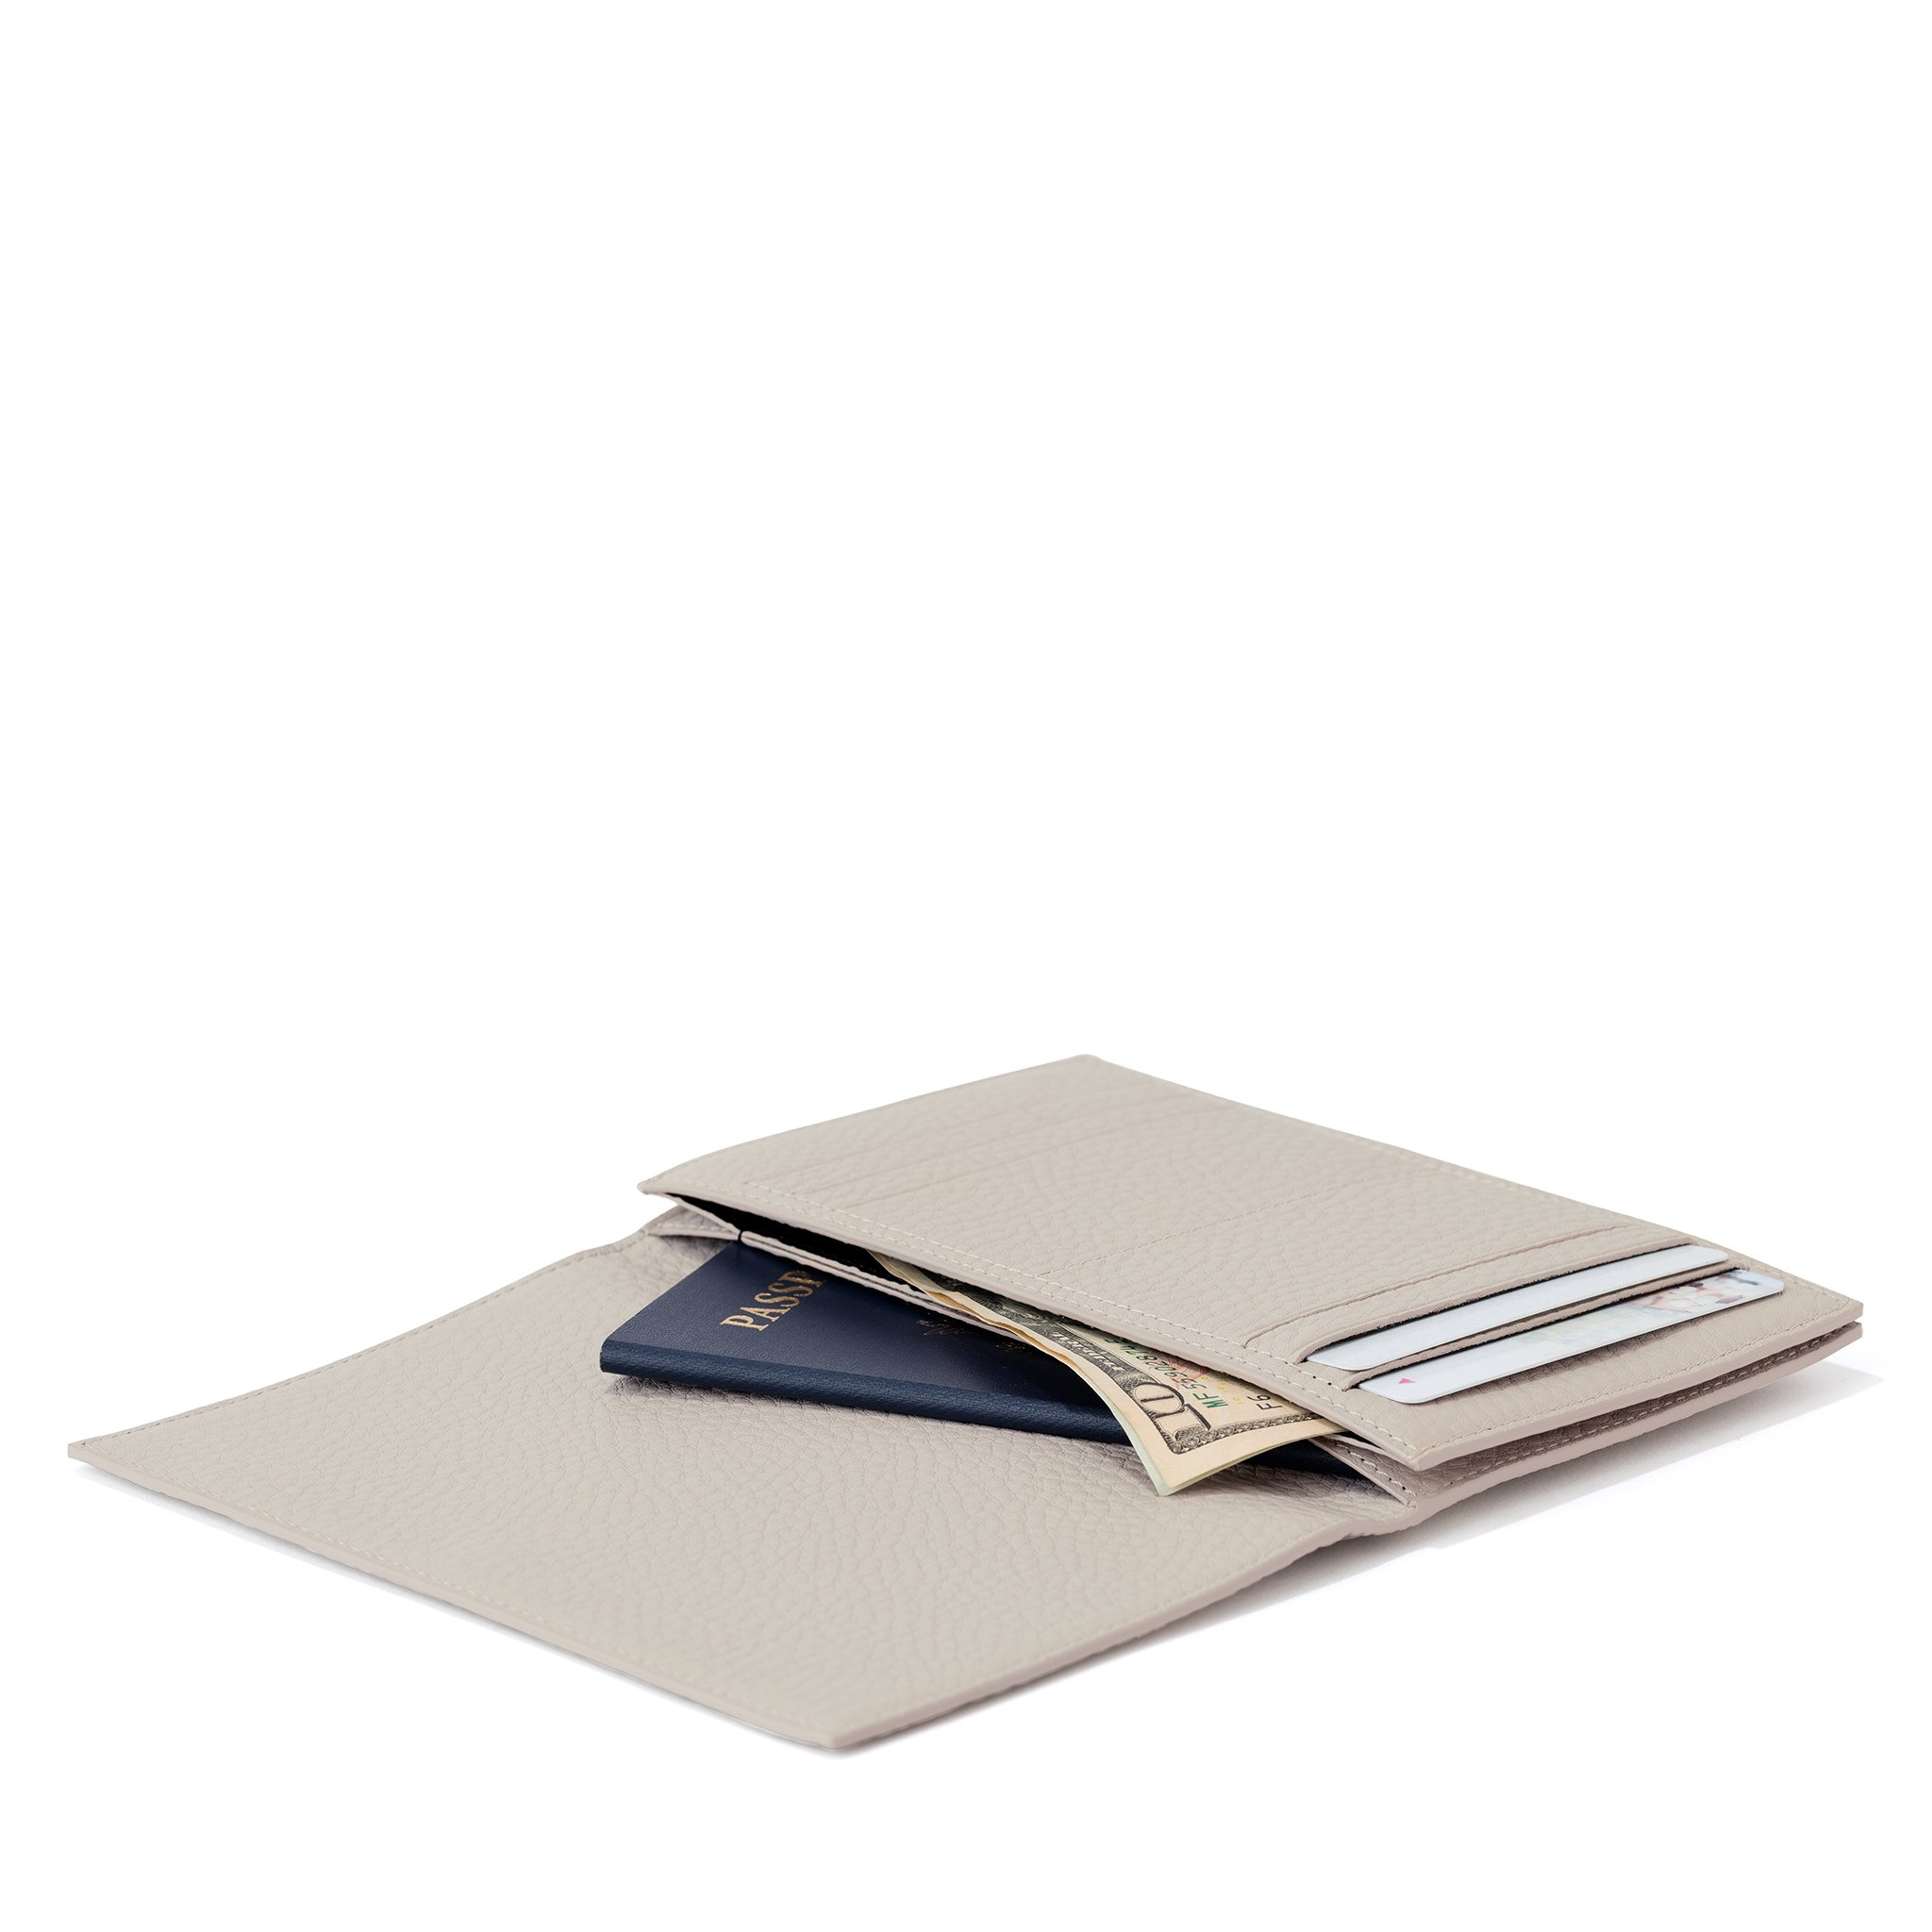 Accordion Travel Wallet $75.00